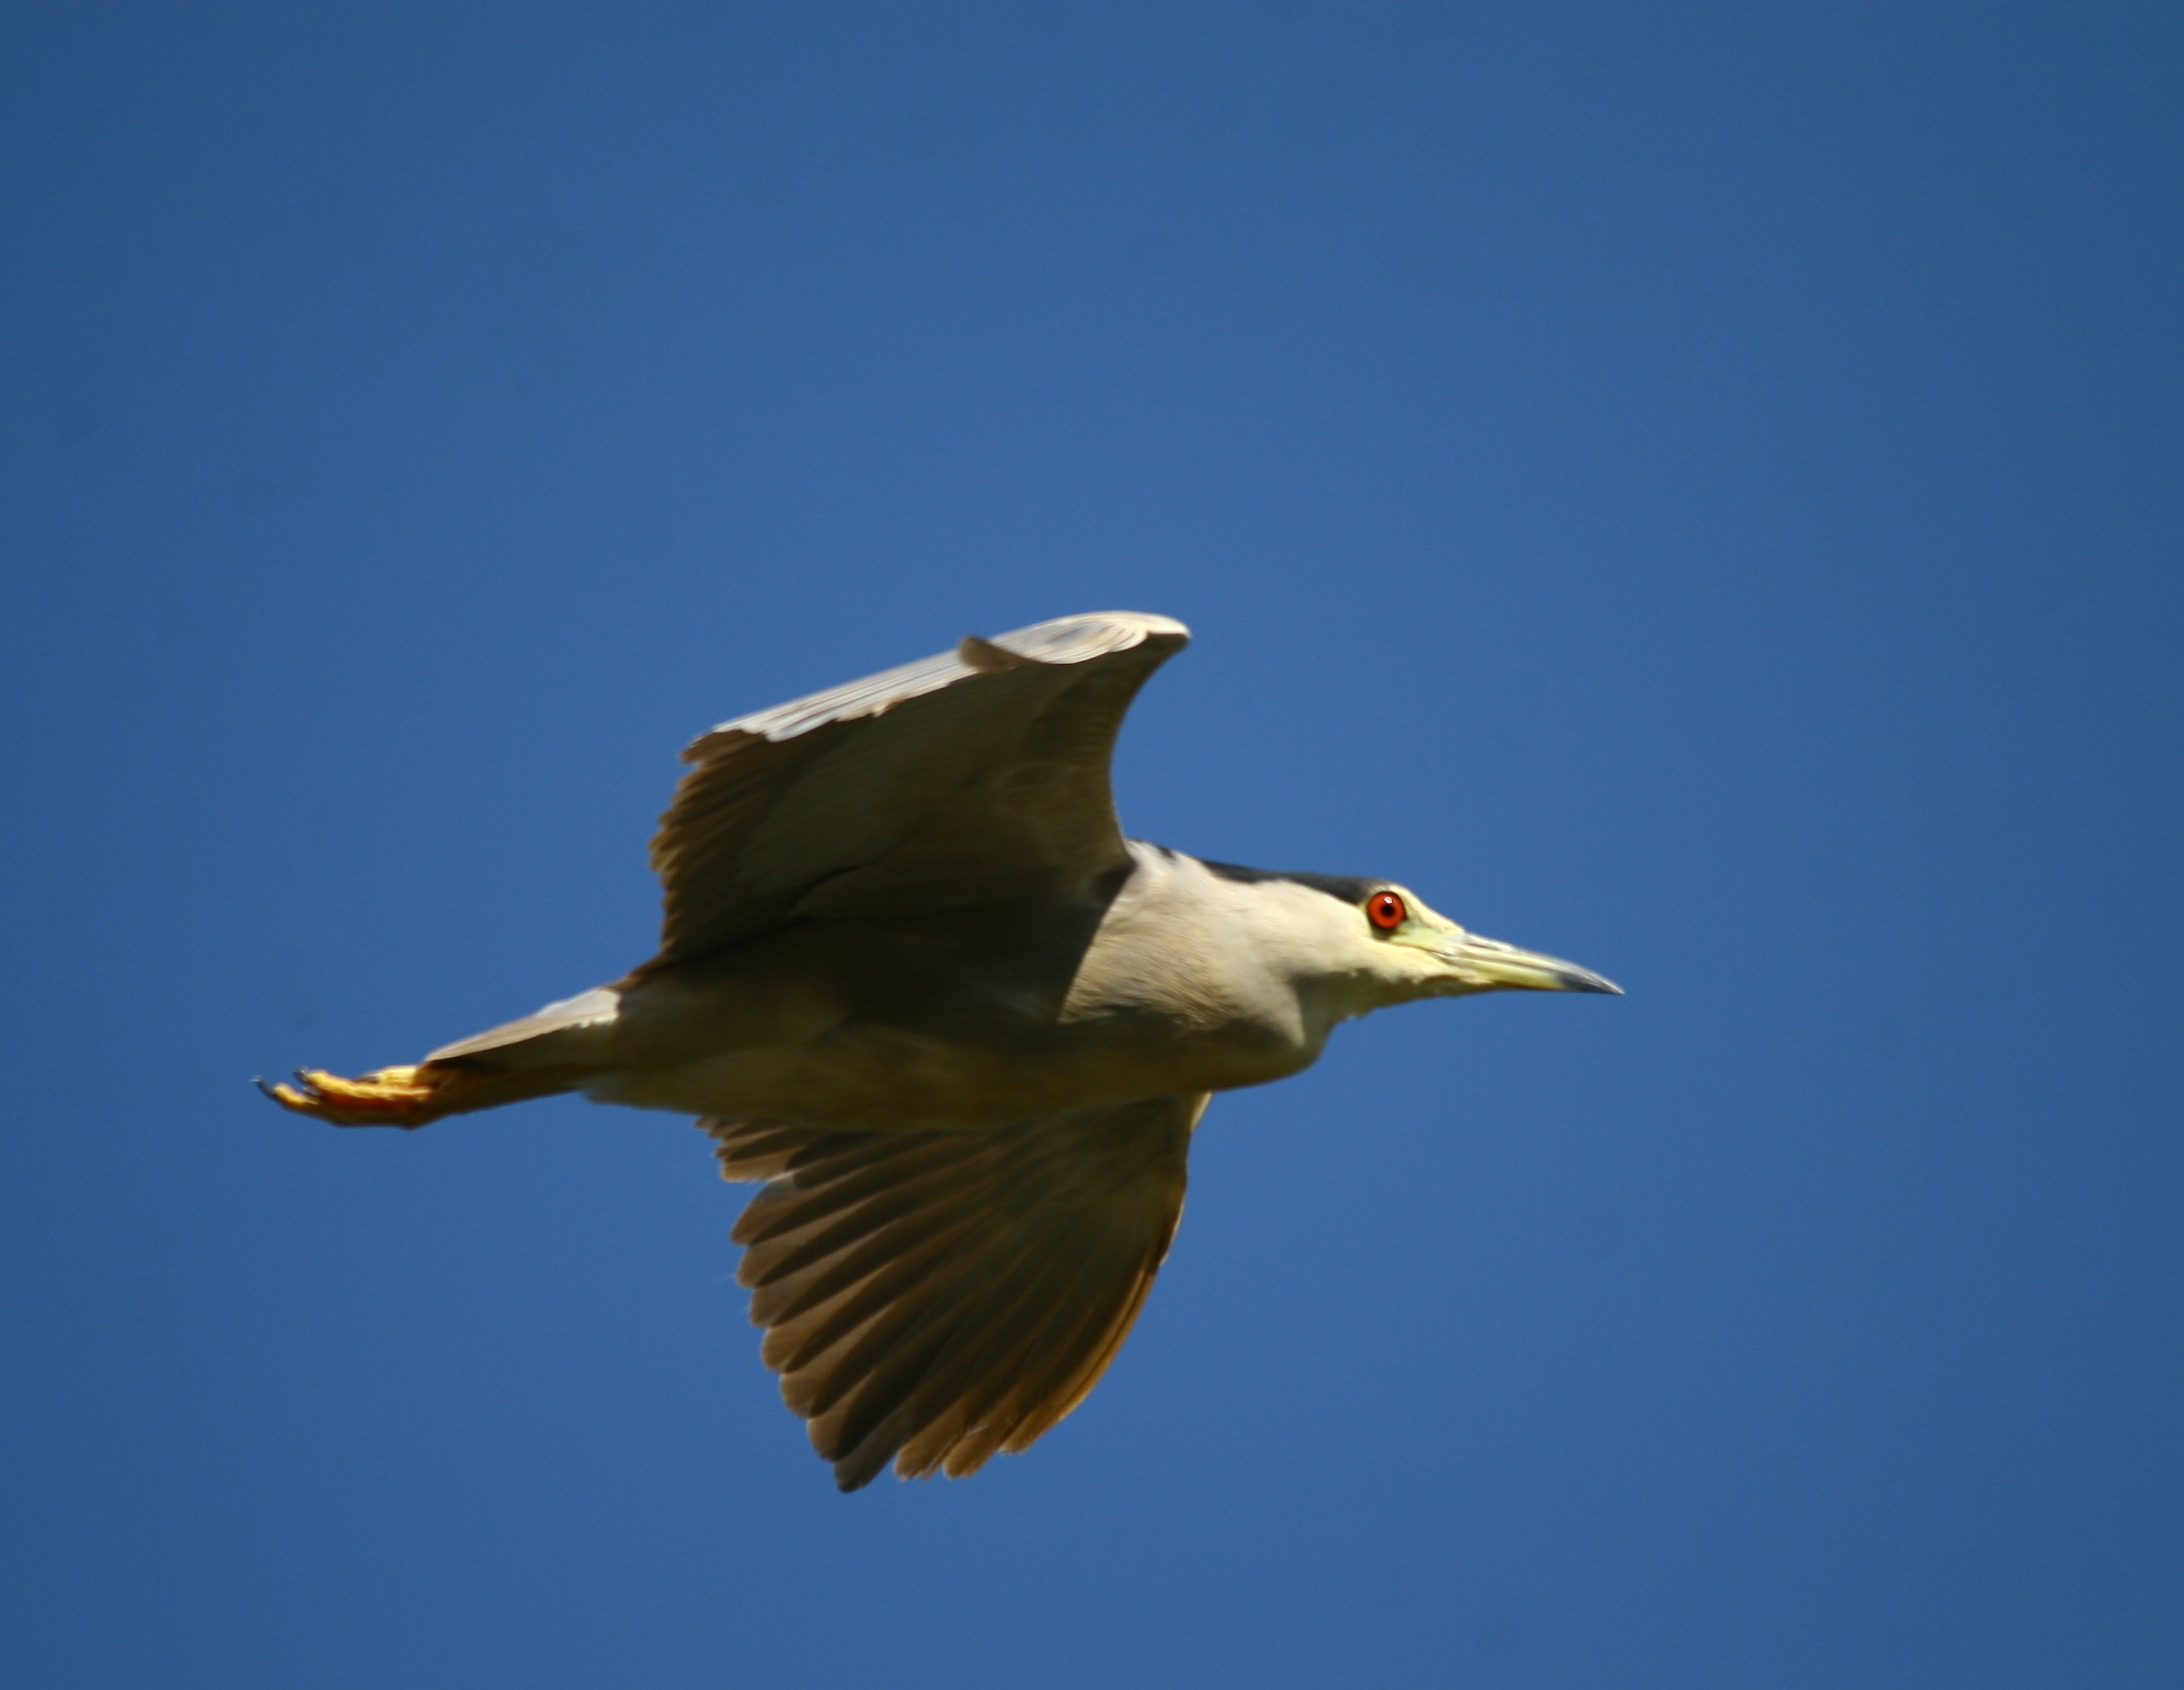 Night heron in flight - photo#4